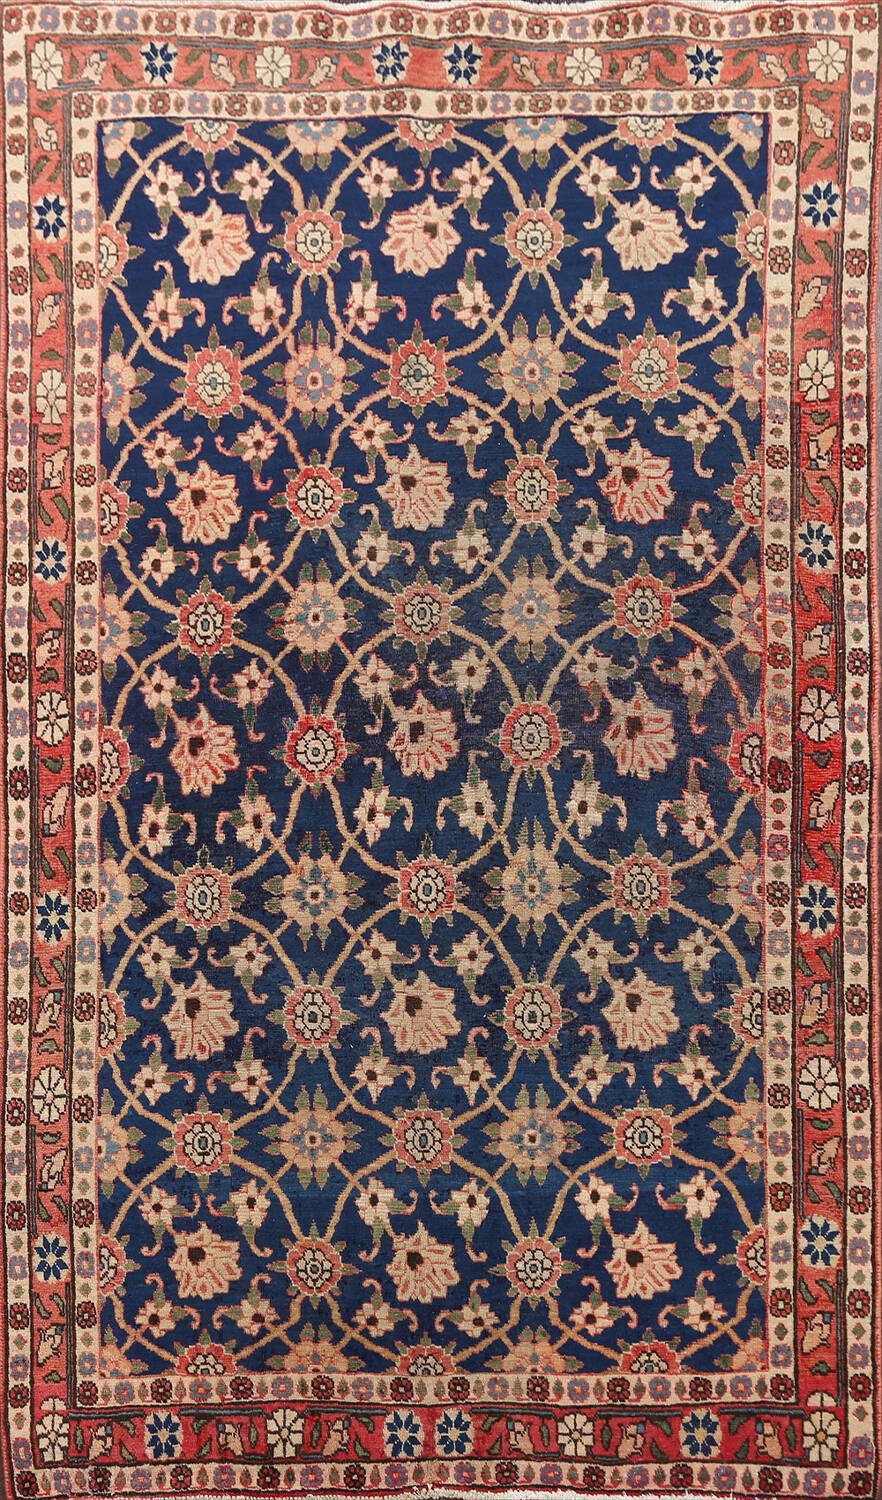 Antique Vegetable Dye Isfahan Persian Area Rug 3x5 image 1